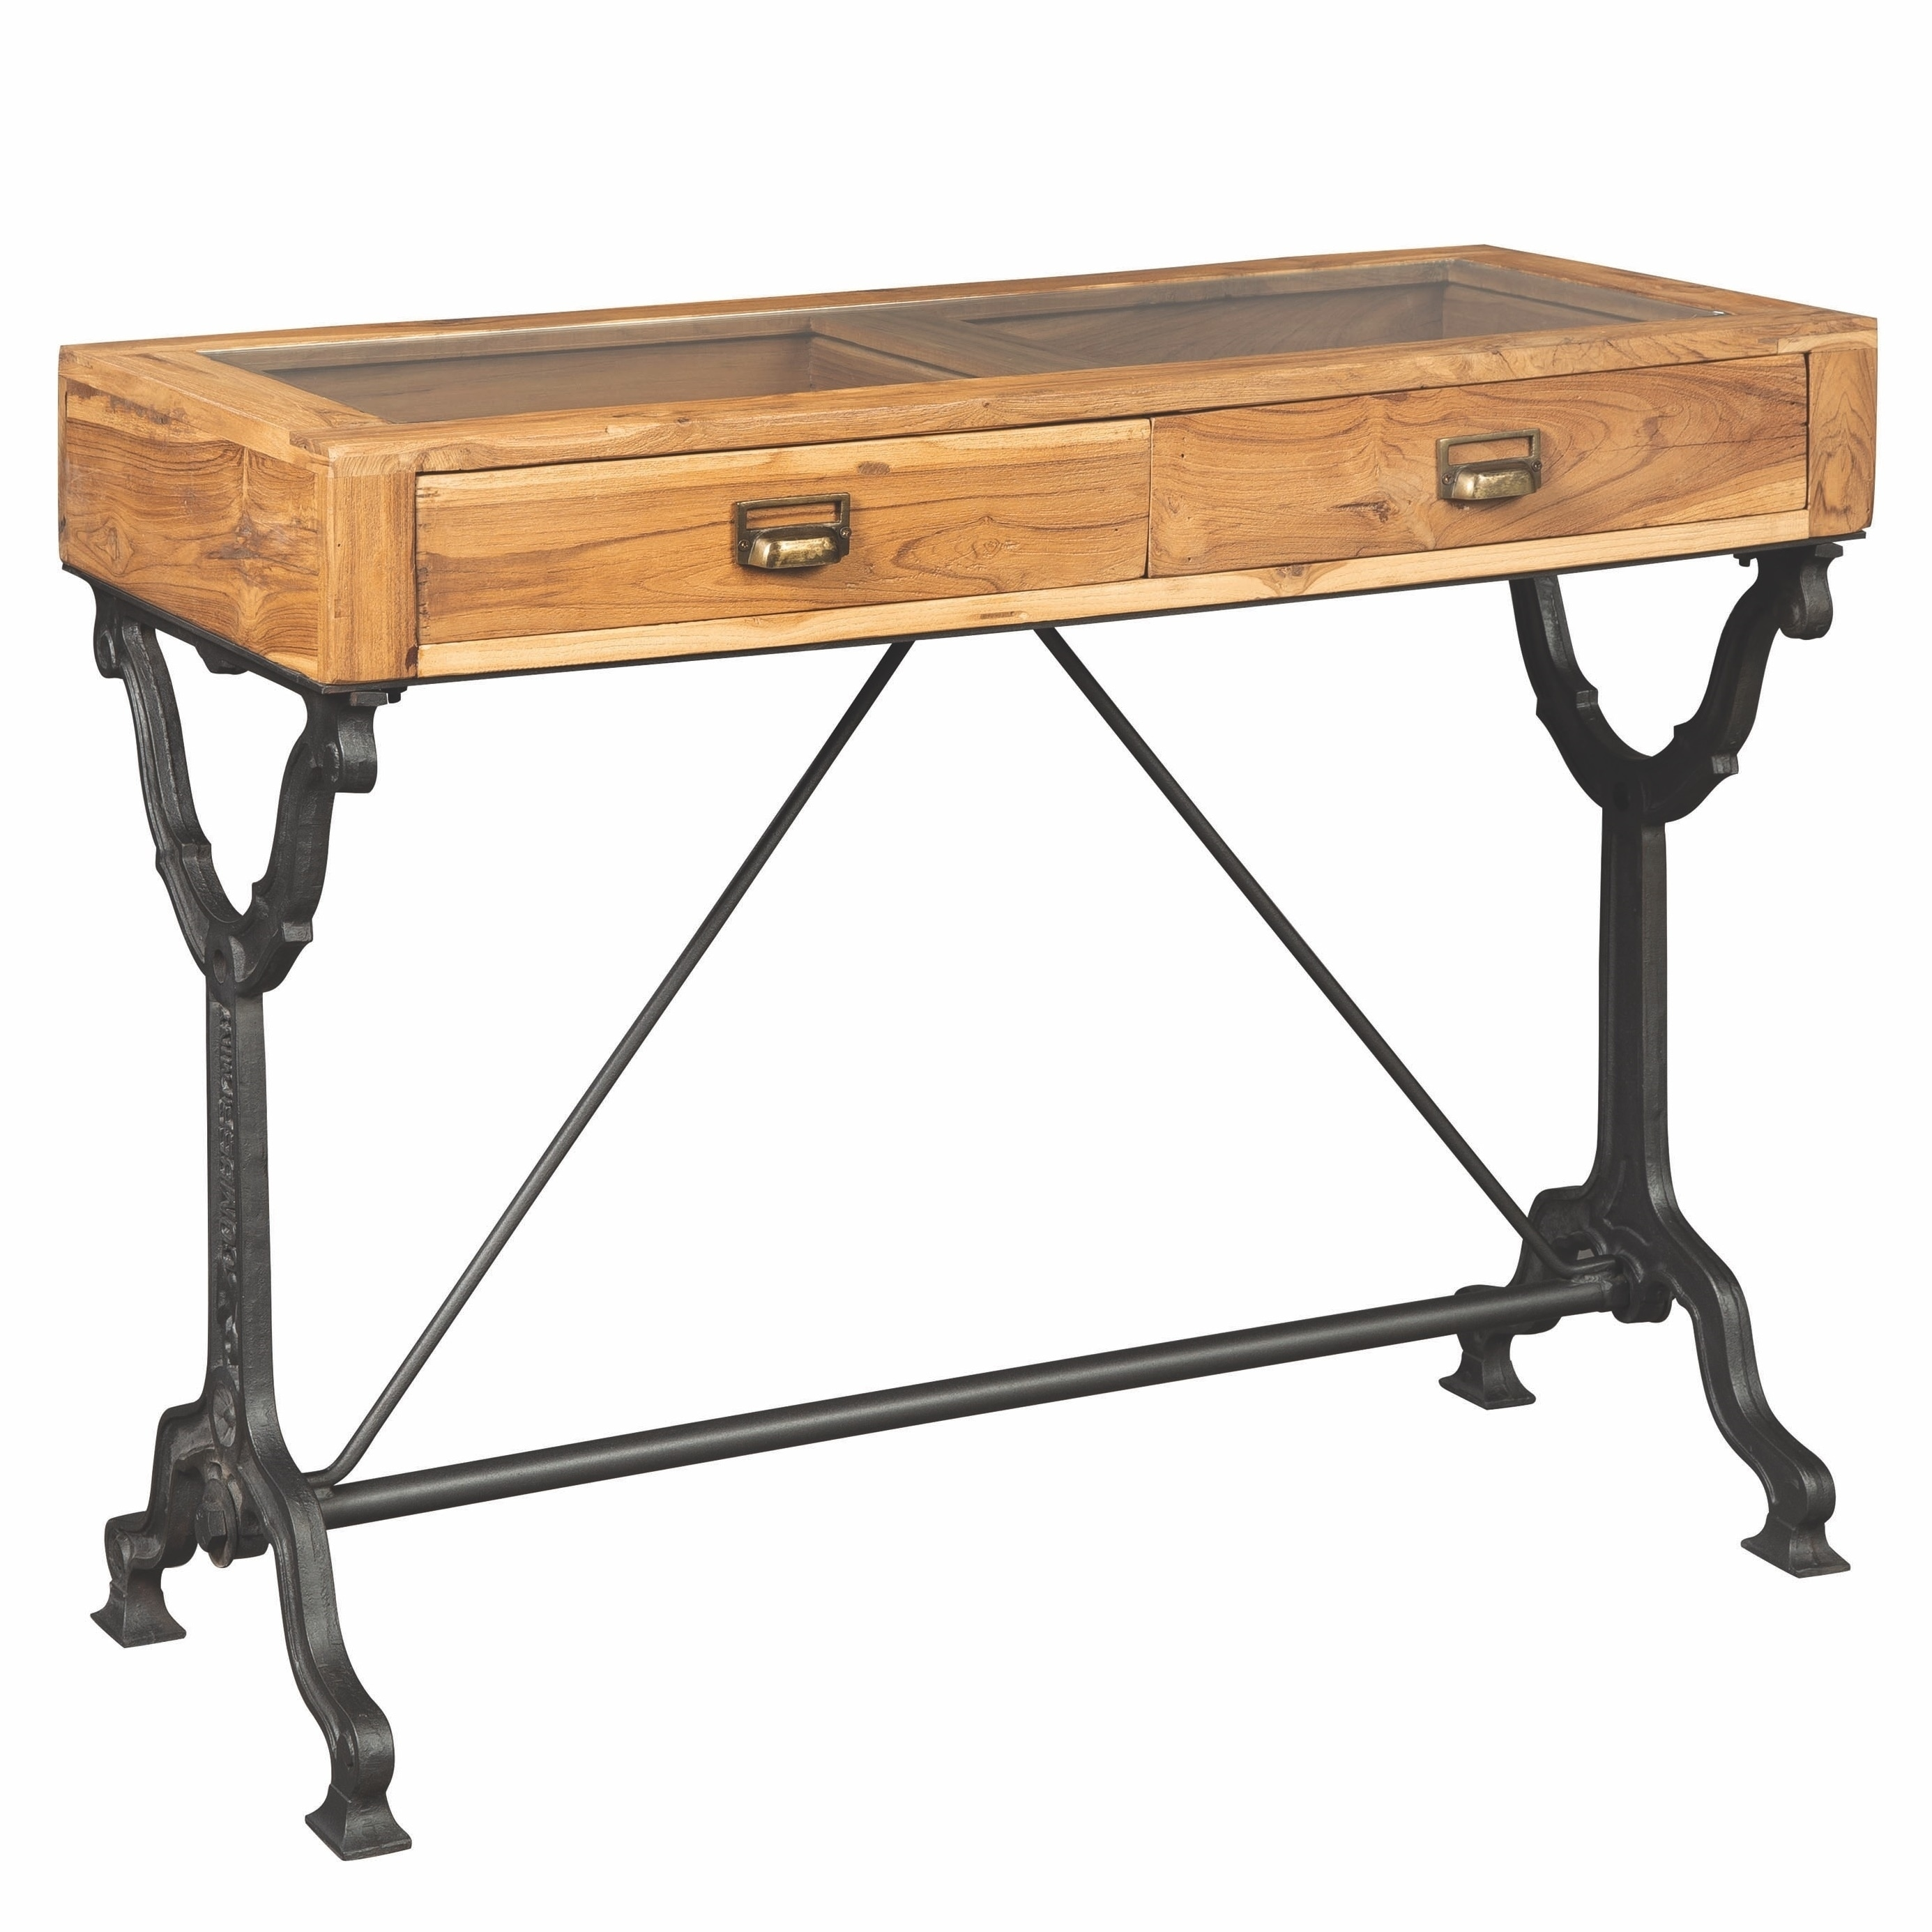 Hand Crafted Solid Teak Wood Industrial Design Console Table With Displaying Glass Top On Sale Overstock 29473564